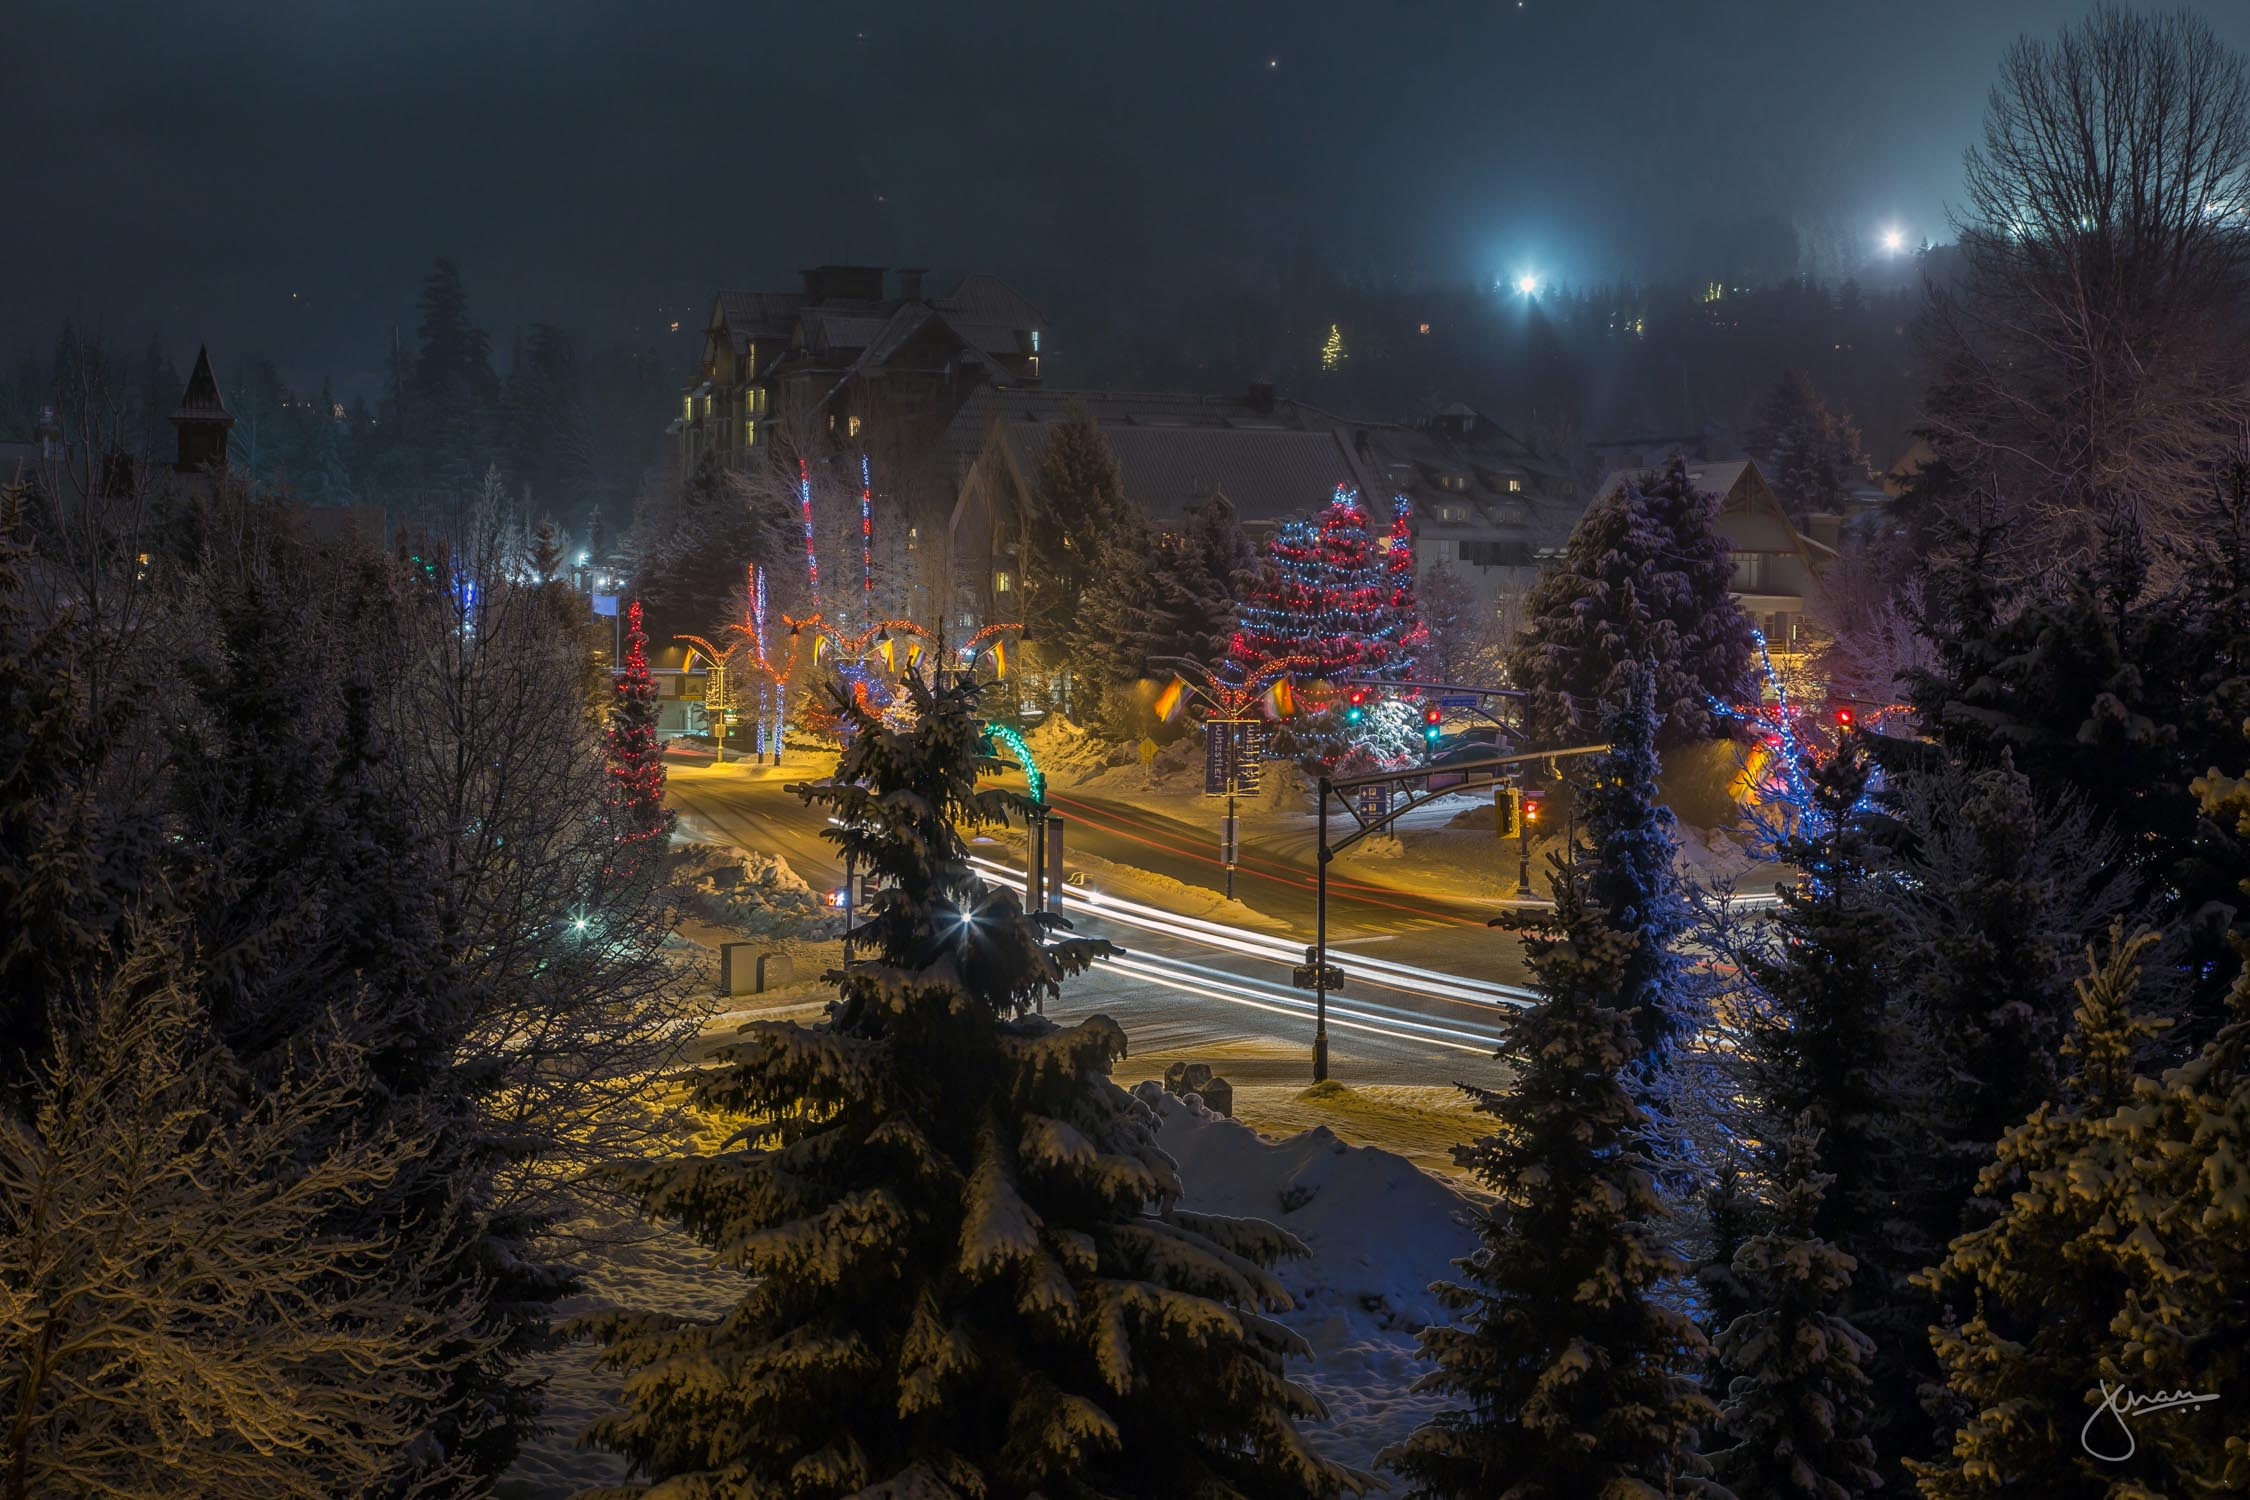 Christmas lights are up in Whistler - creating a fewtiv